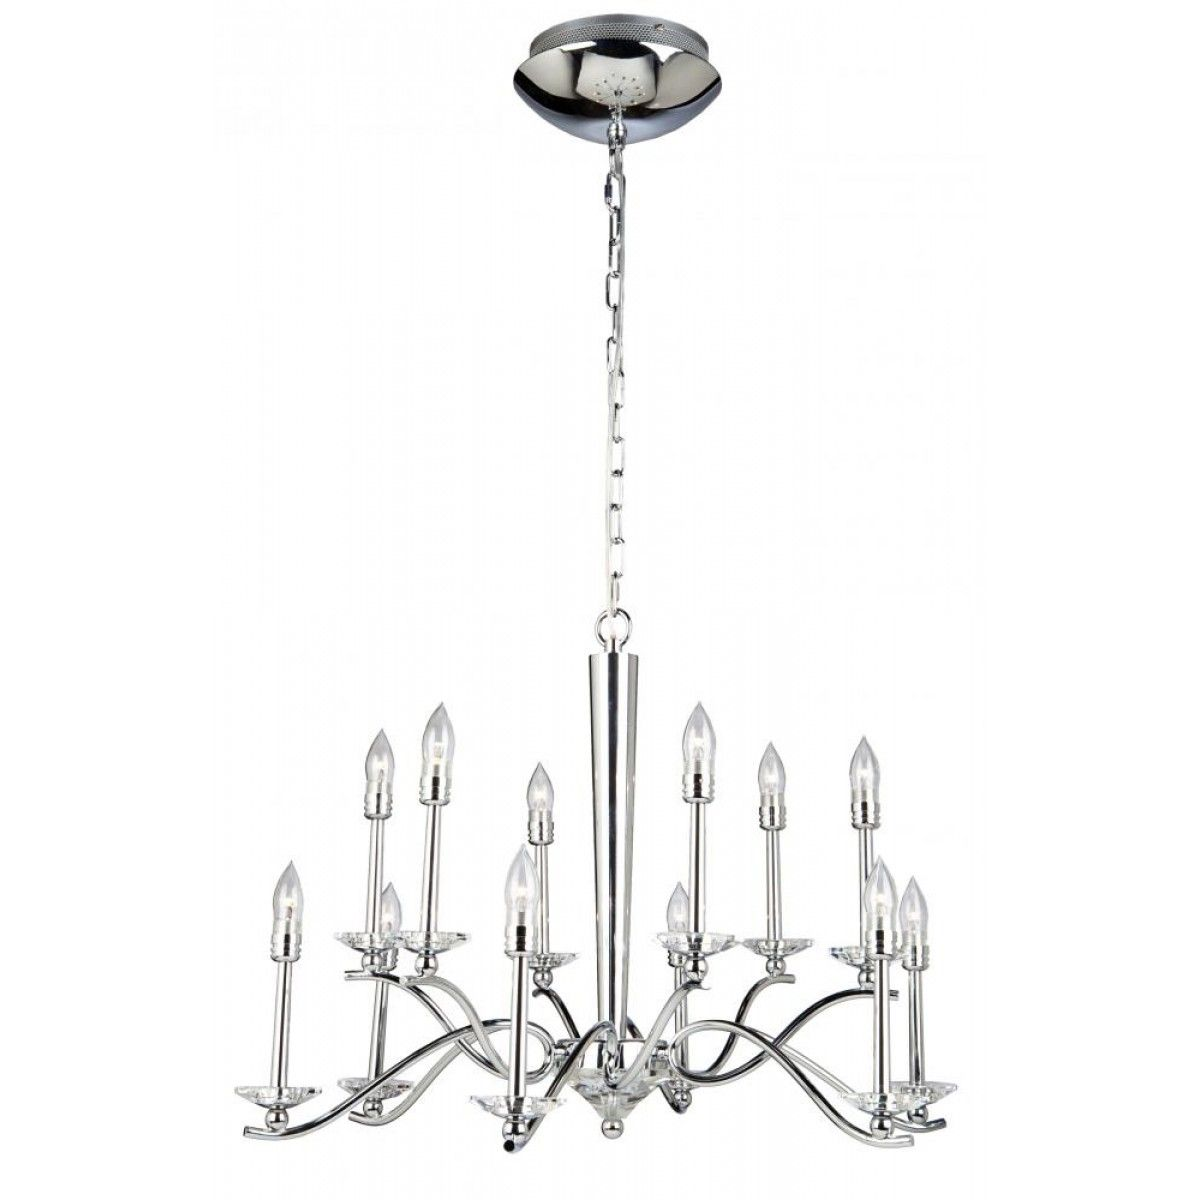 Chrome chandelier montreal lighting hardware chandeliers chrome chandelier montreal lighting hardware mozeypictures Gallery